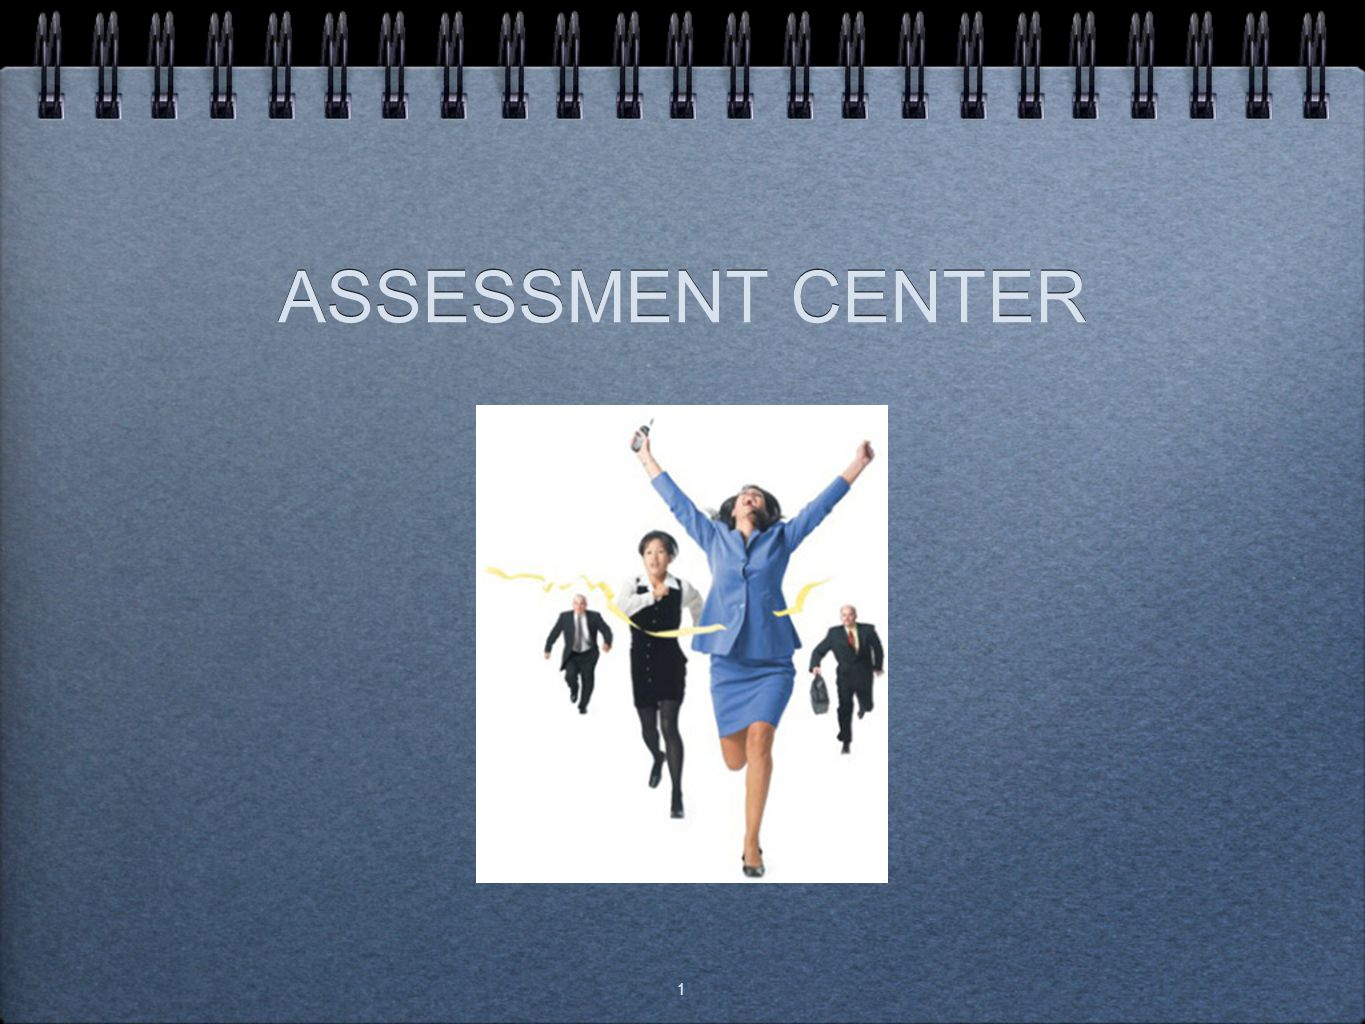 1 ASSESSMENT CENTER